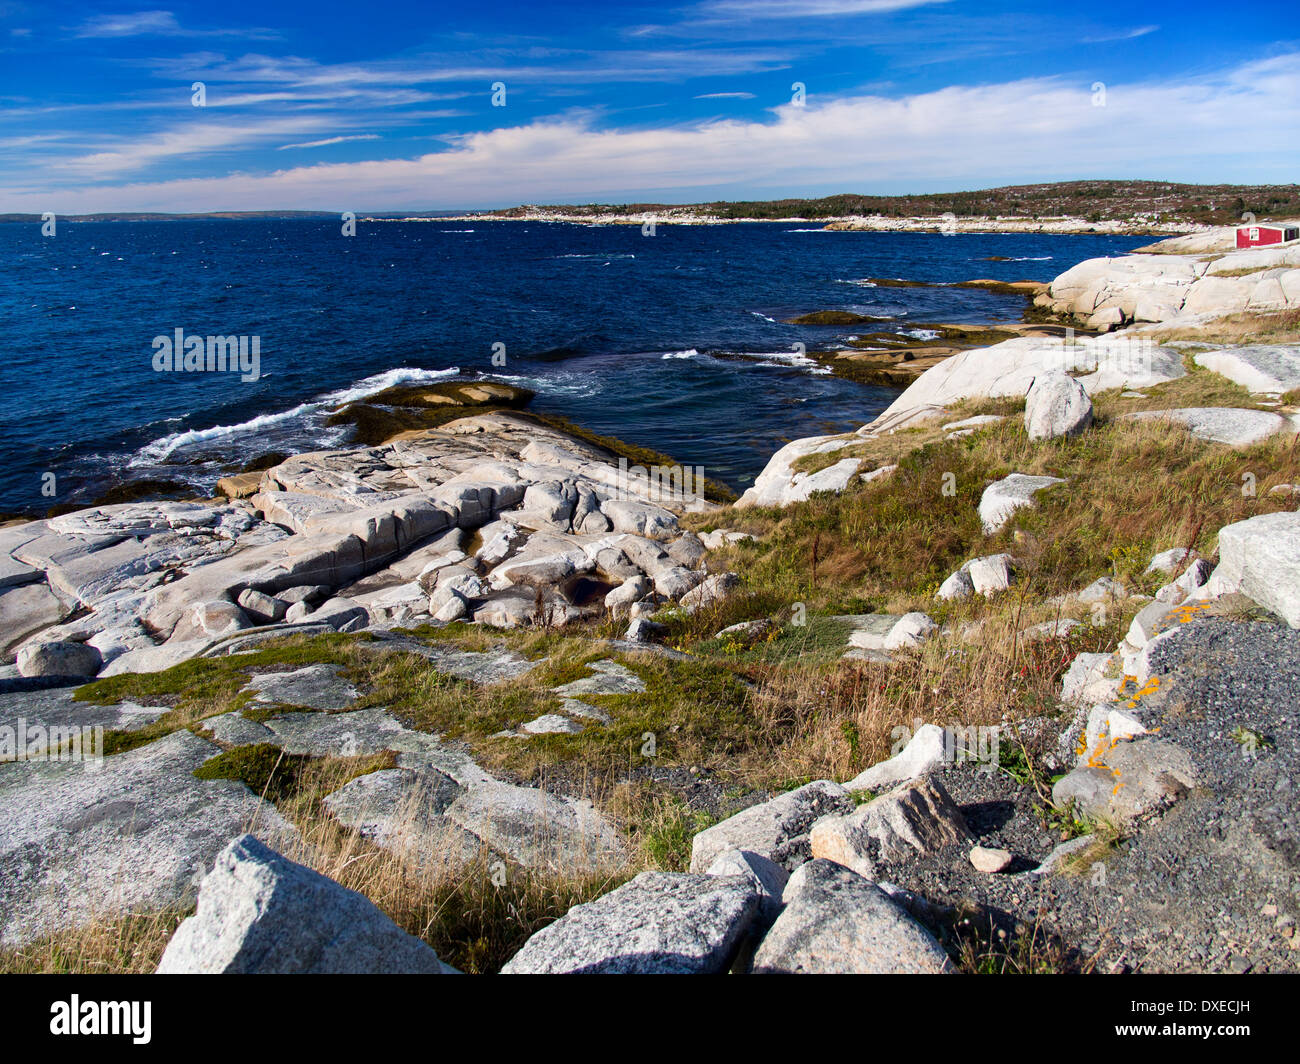 Peggy's Cove, Nova Scotia Canada - red house on the coastline Stock Photo